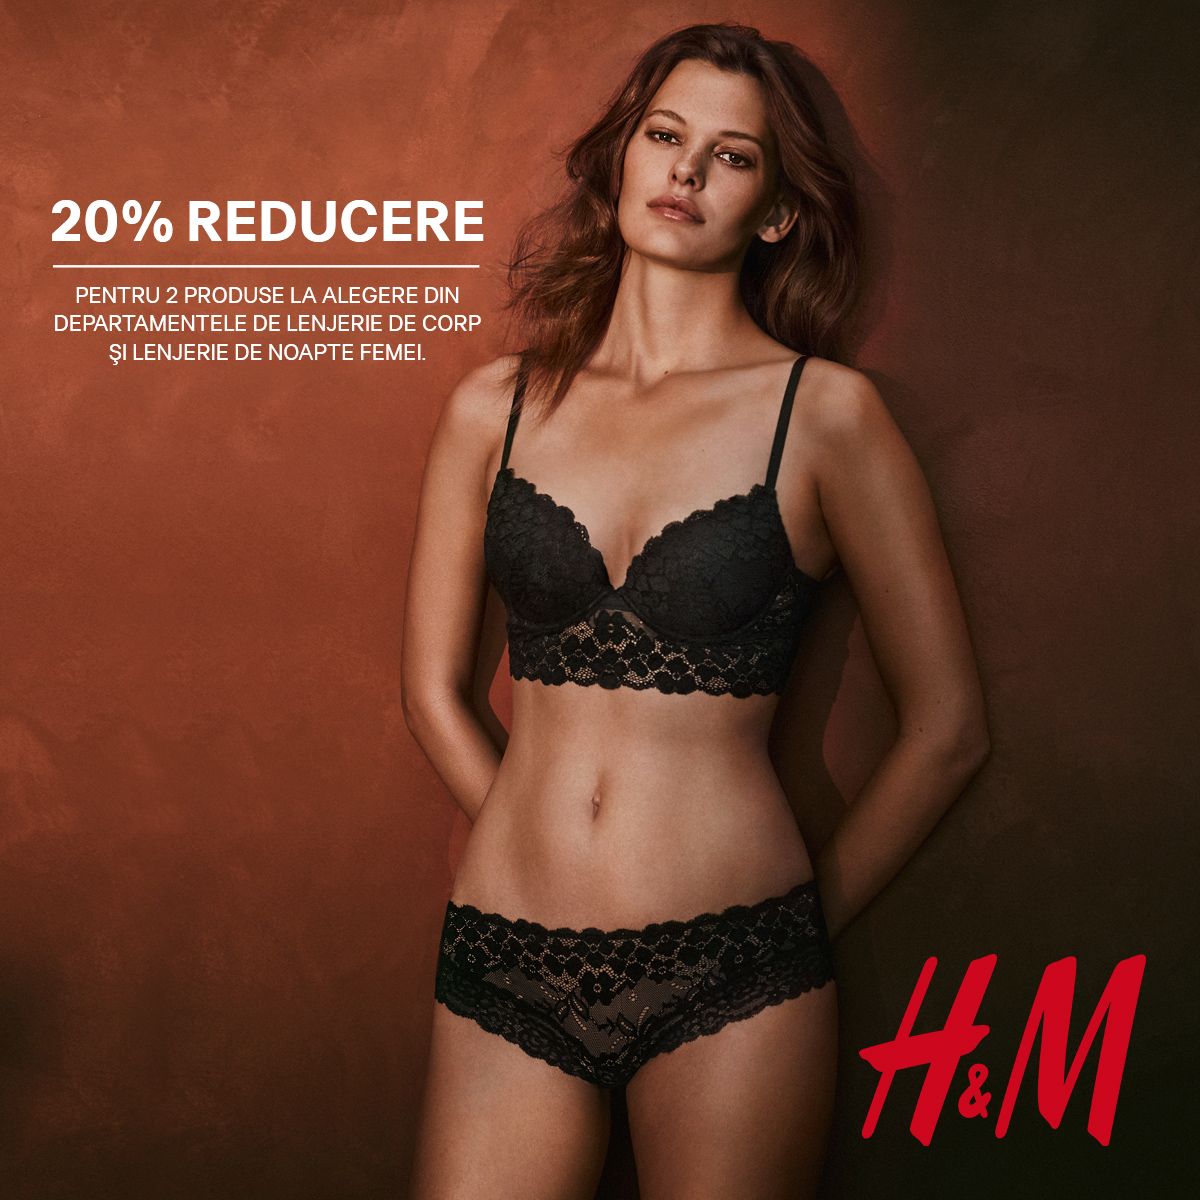 underwear_coupon_RO-H&M